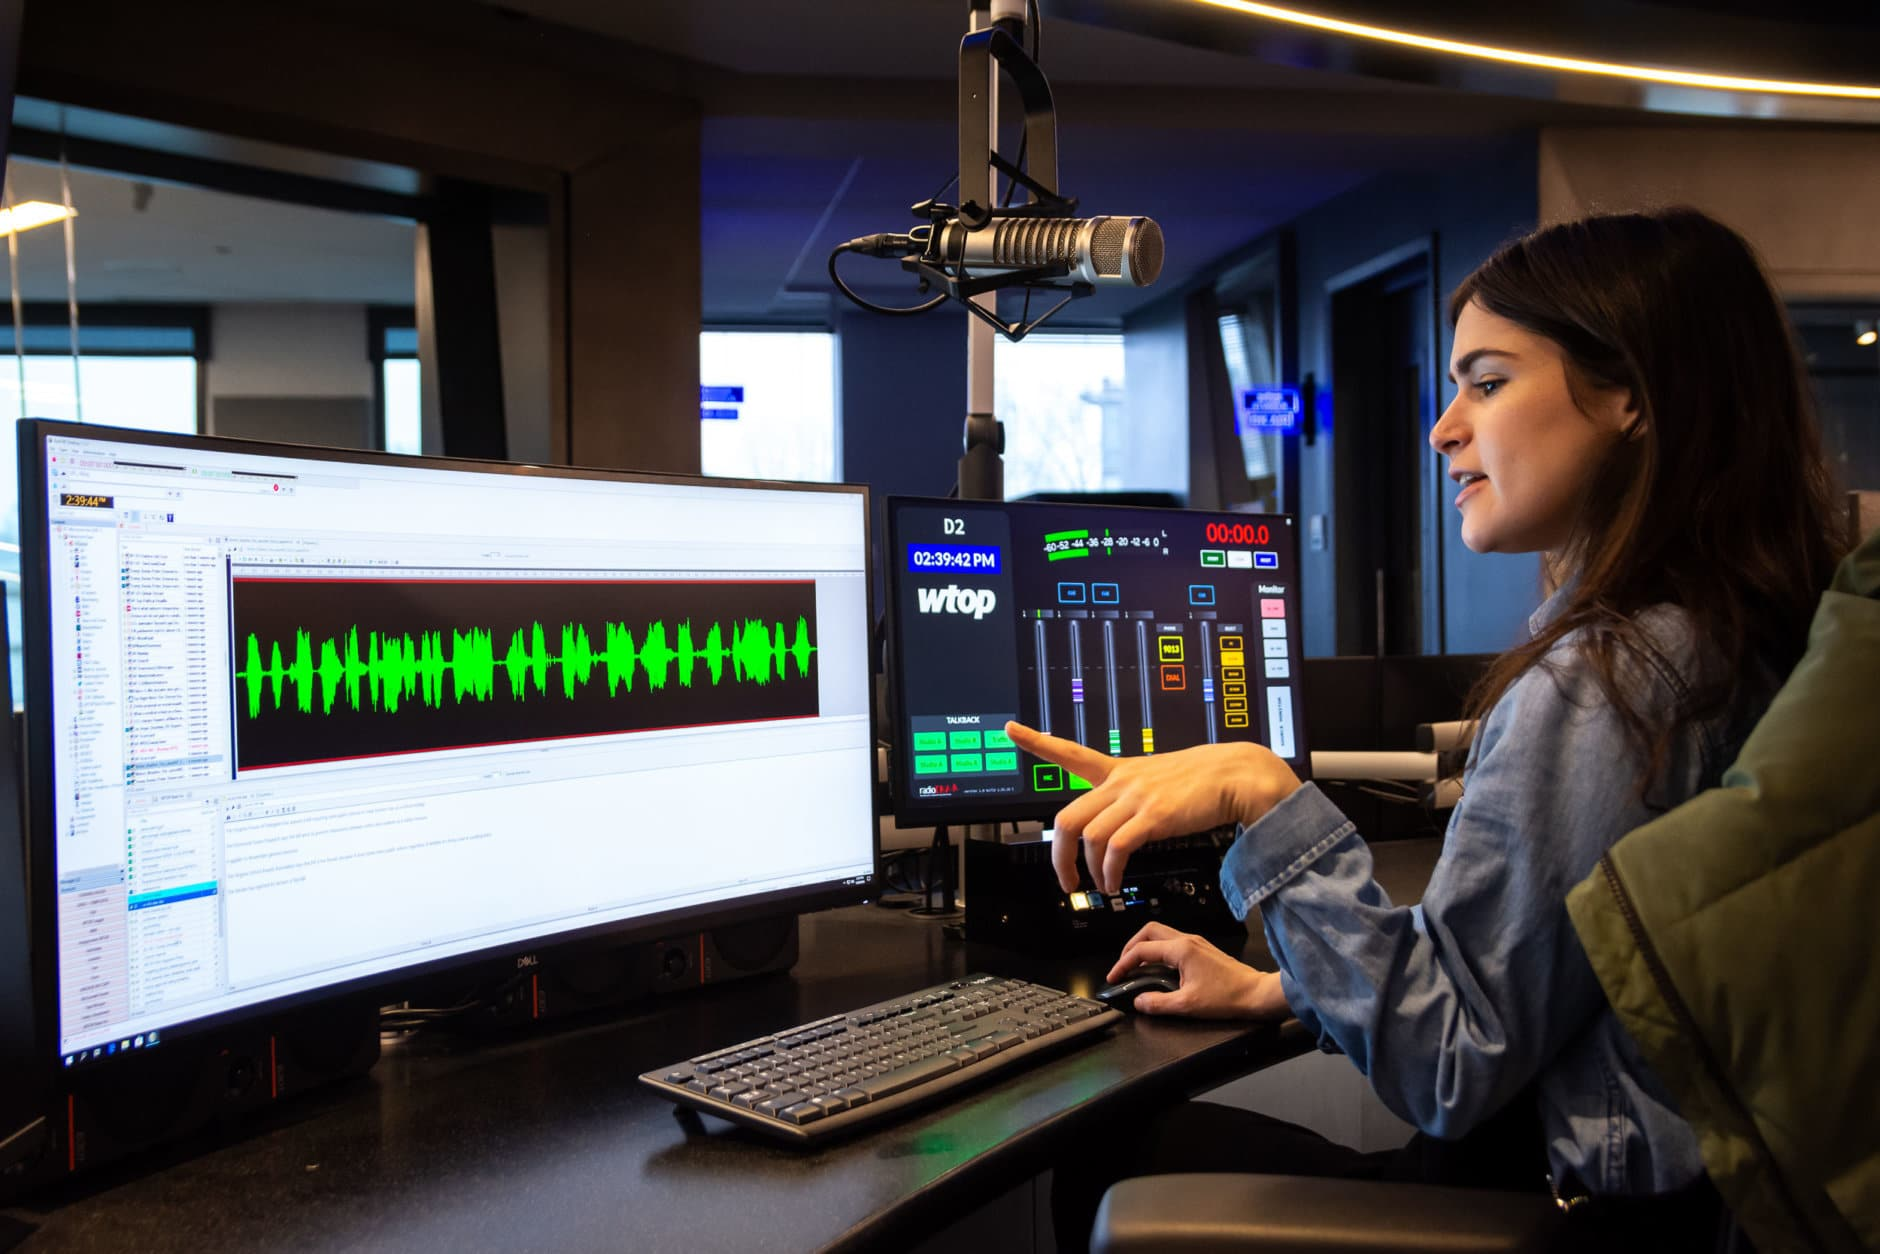 WTOP night editor Anna Isaacs at her work station on Jan. 29. The Radio Editor handles the minute-to-minute flow and coverage of news, including the order of stories in the hourly lineup. They also seek out and book interviews, and direct anchors through breaking news coverage. Like the original WTOP newsroom, the new Radio Editor station has a direct line of sight into the Glass-Enclosed Nerve Center, and can communicate with the anchors through intercom. (WTOP/Alejandro Alvarez)